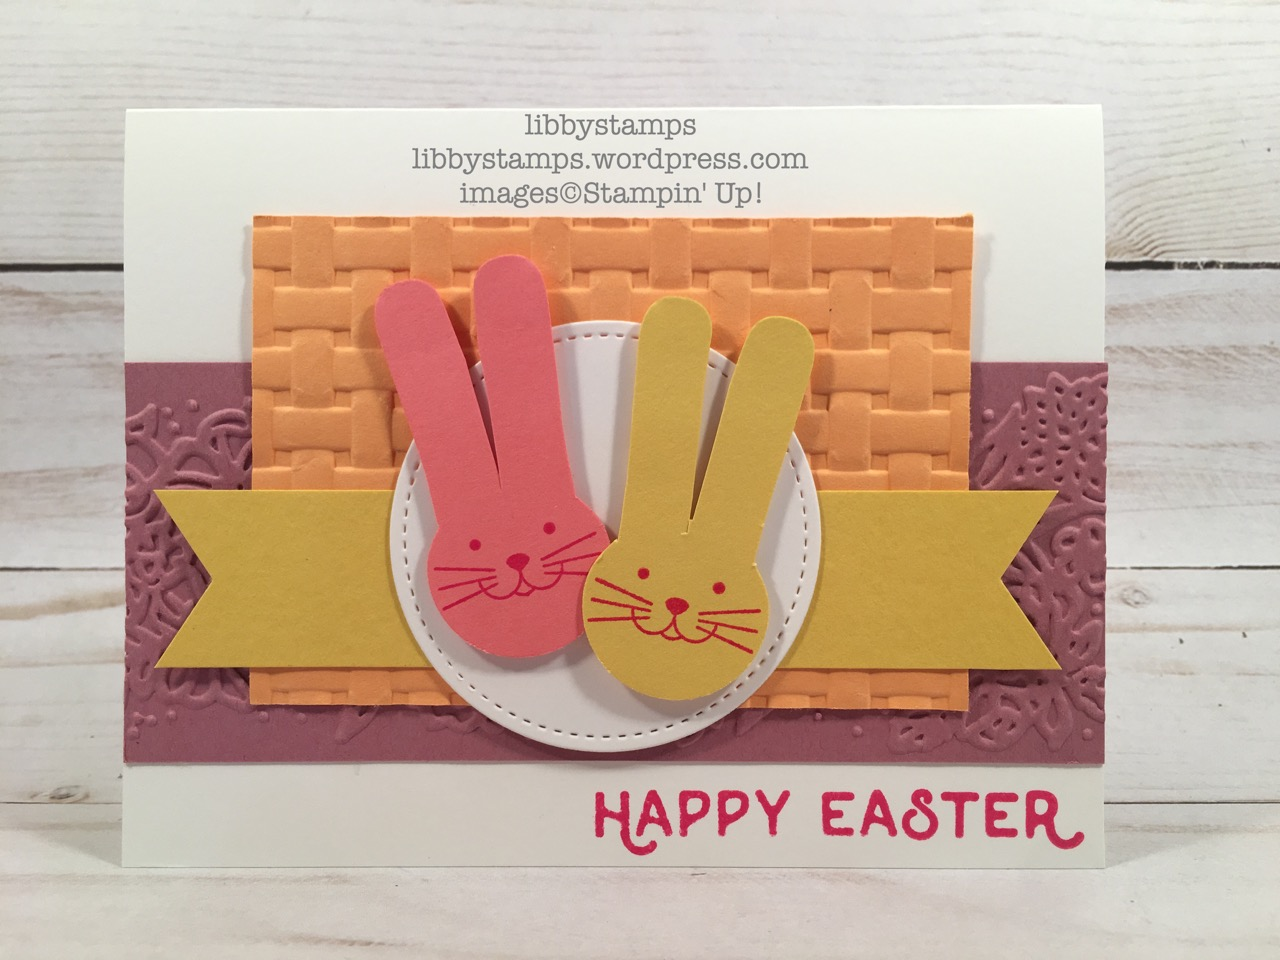 libbystamps, stampin up, Hello Easter, Foxy Friends, Stitched Shapes Framelits, Cookie Cutter BuilderPunch, Petal Pair EF, Basket Weave EF, TSOT, Easter